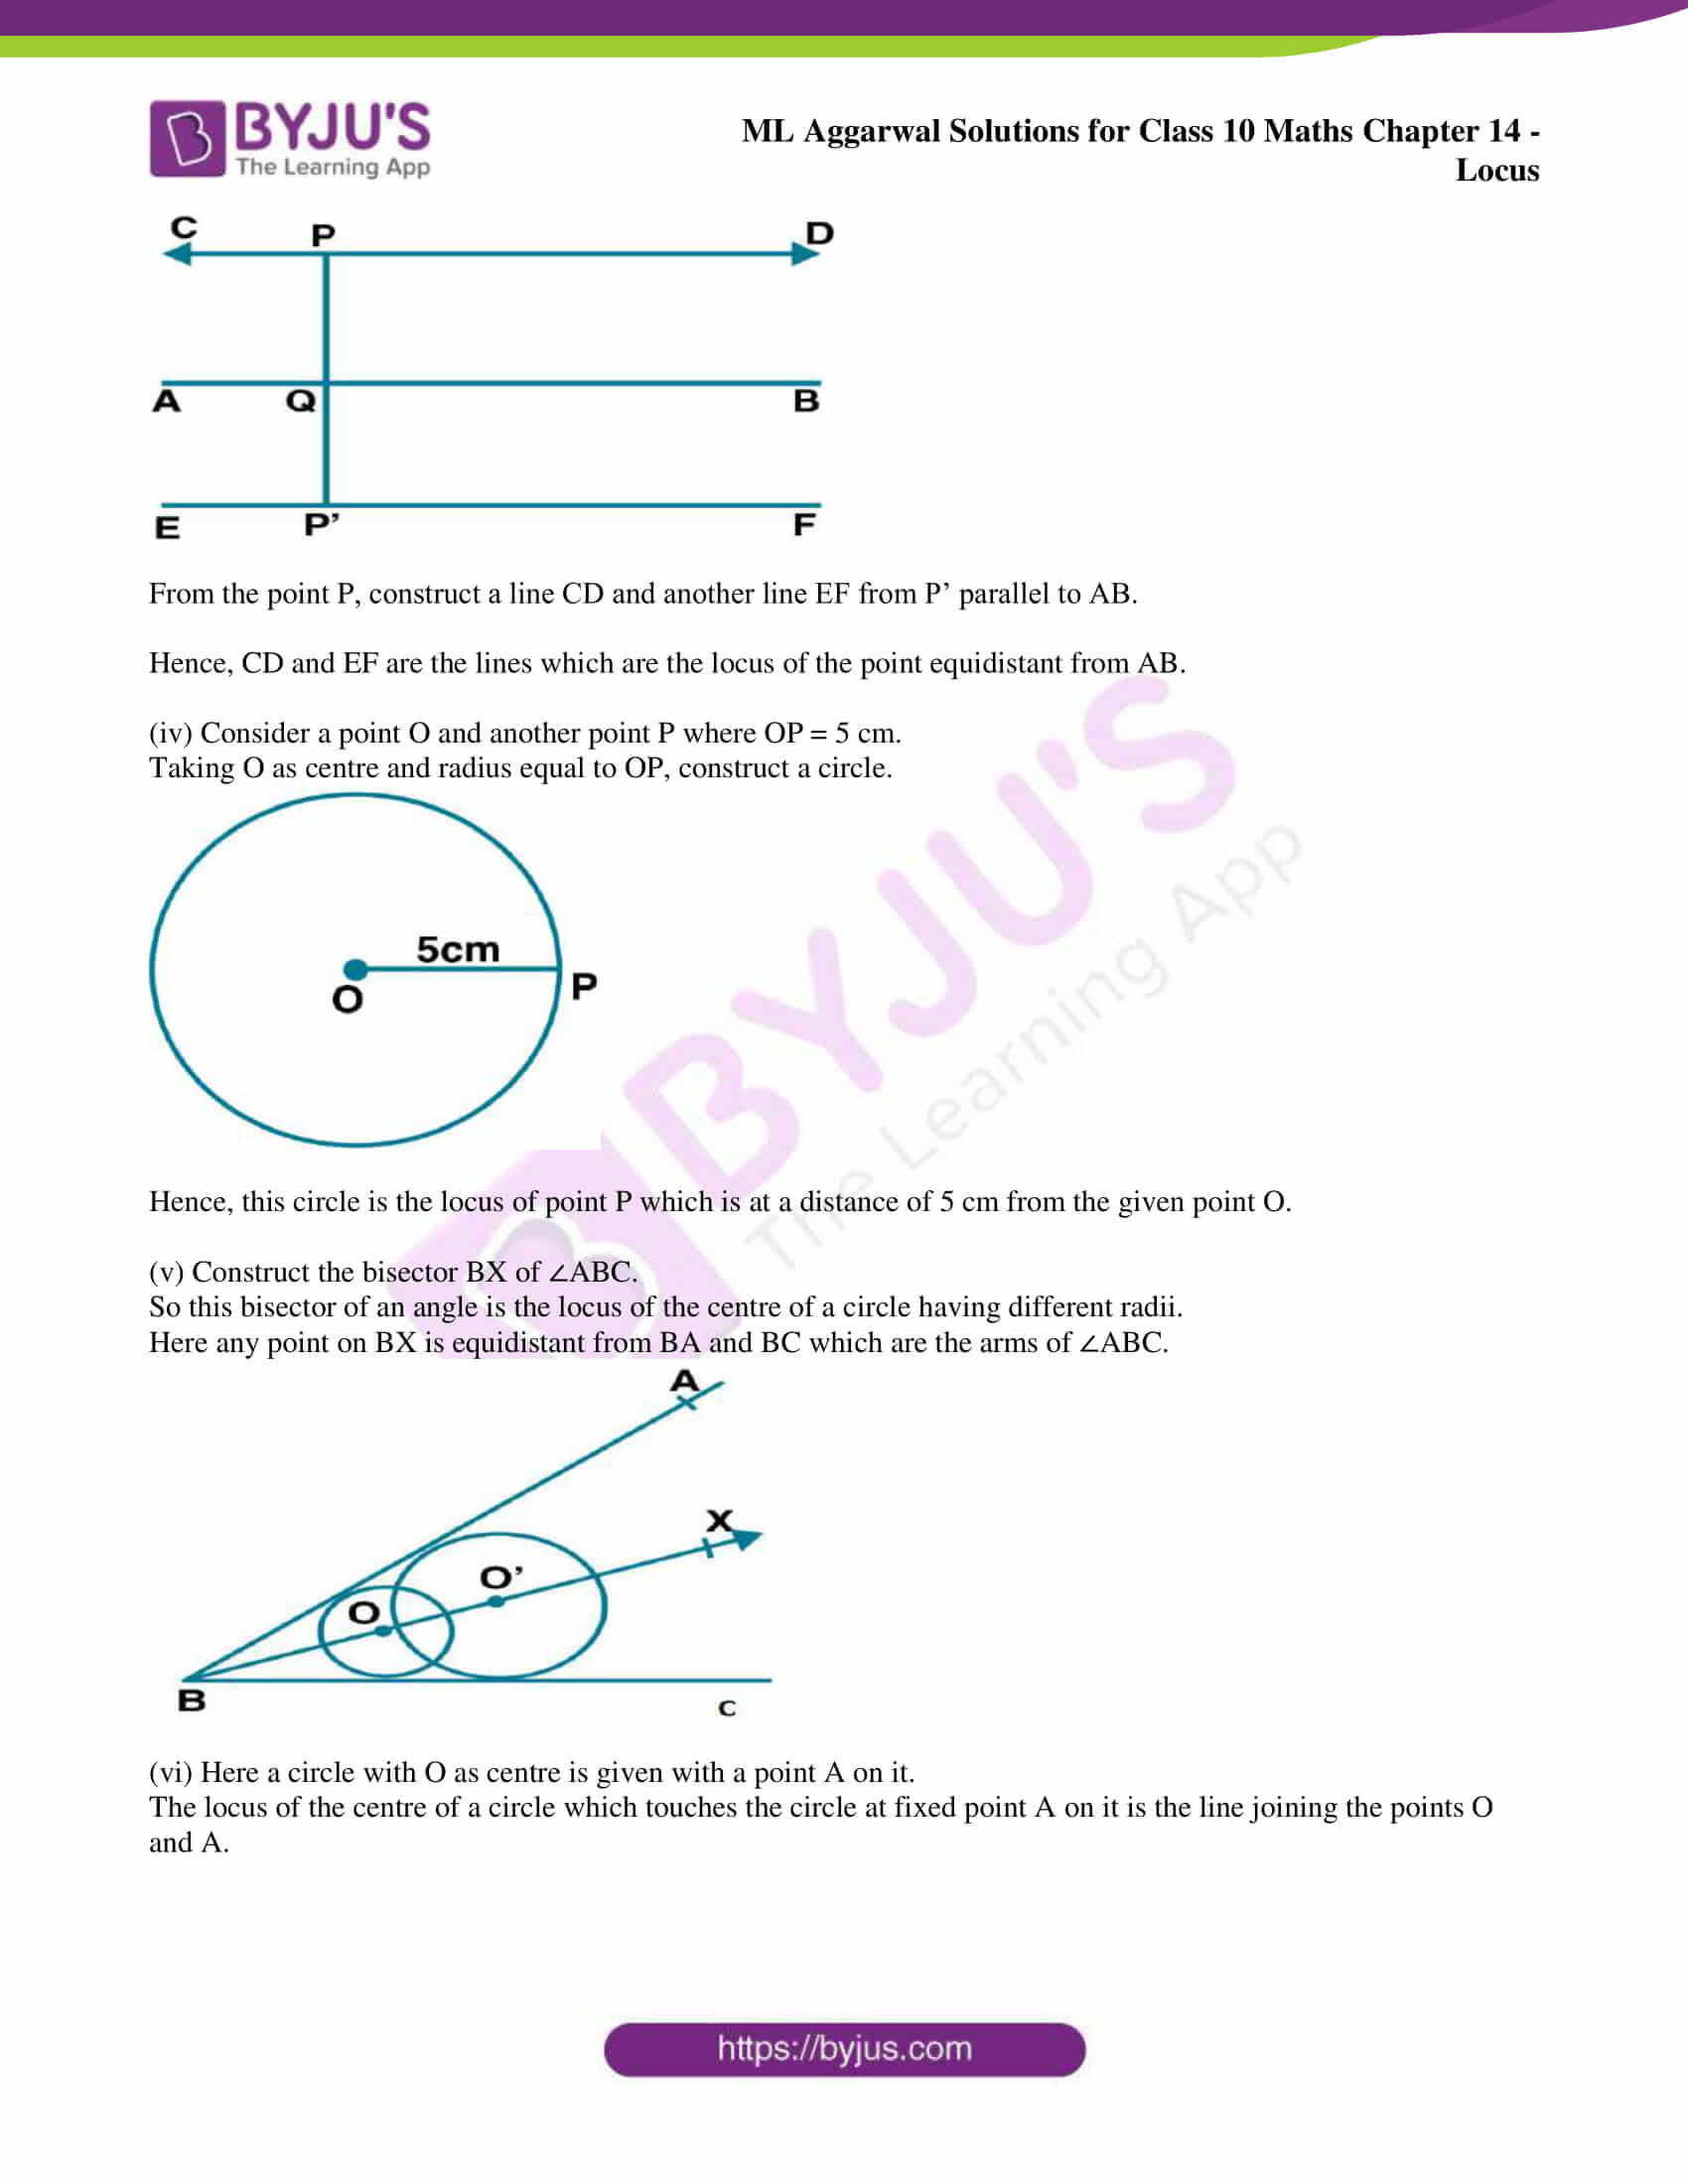 ml aggarwal solutions for class 10 maths chapter 14 07